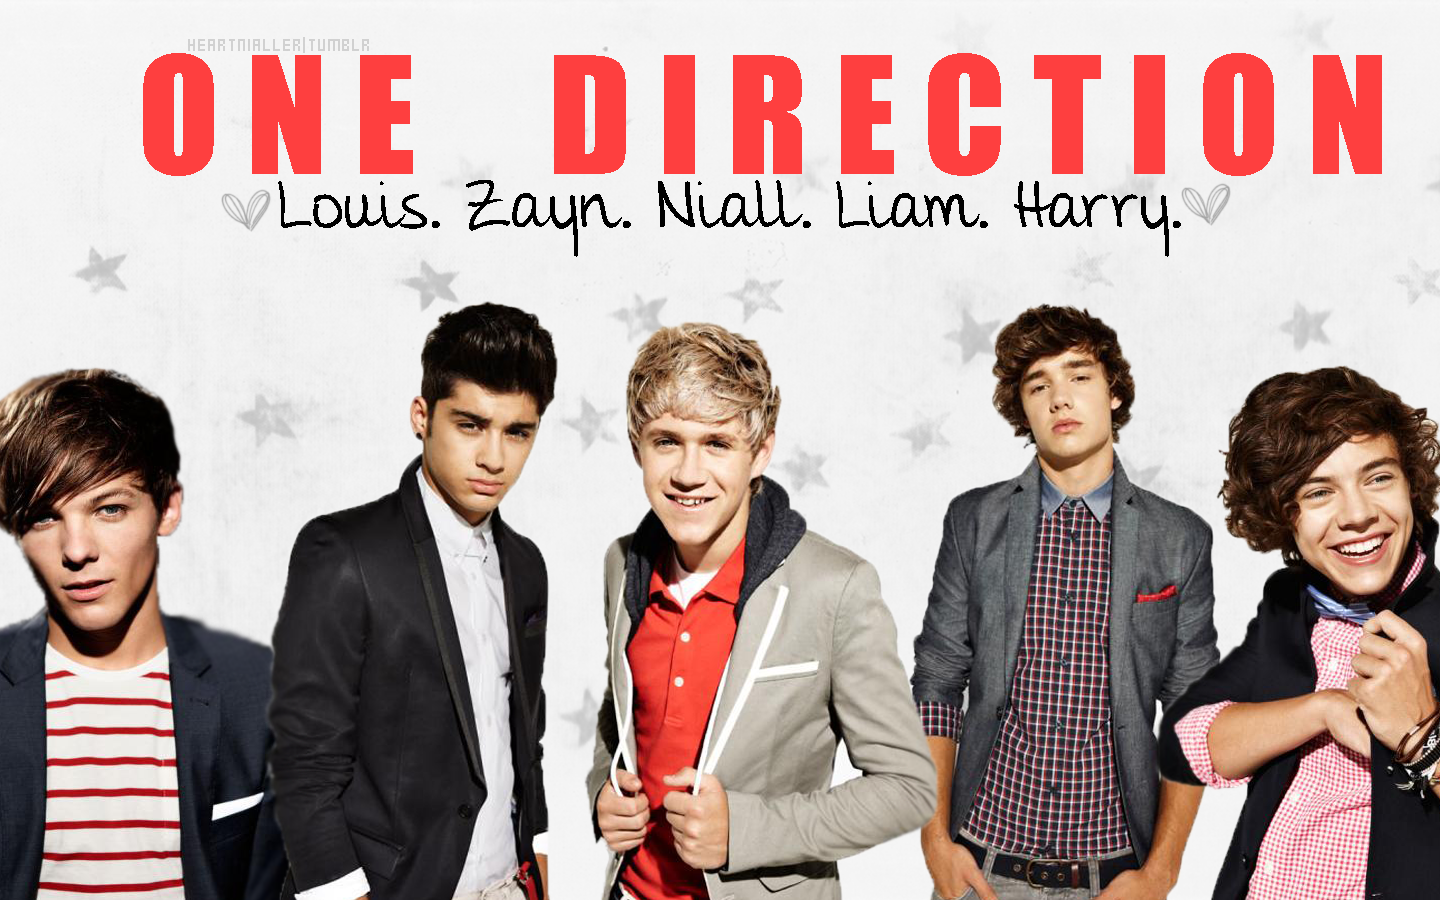 Free Download One Direction Hd Wallpapers 2013 For Desktop And